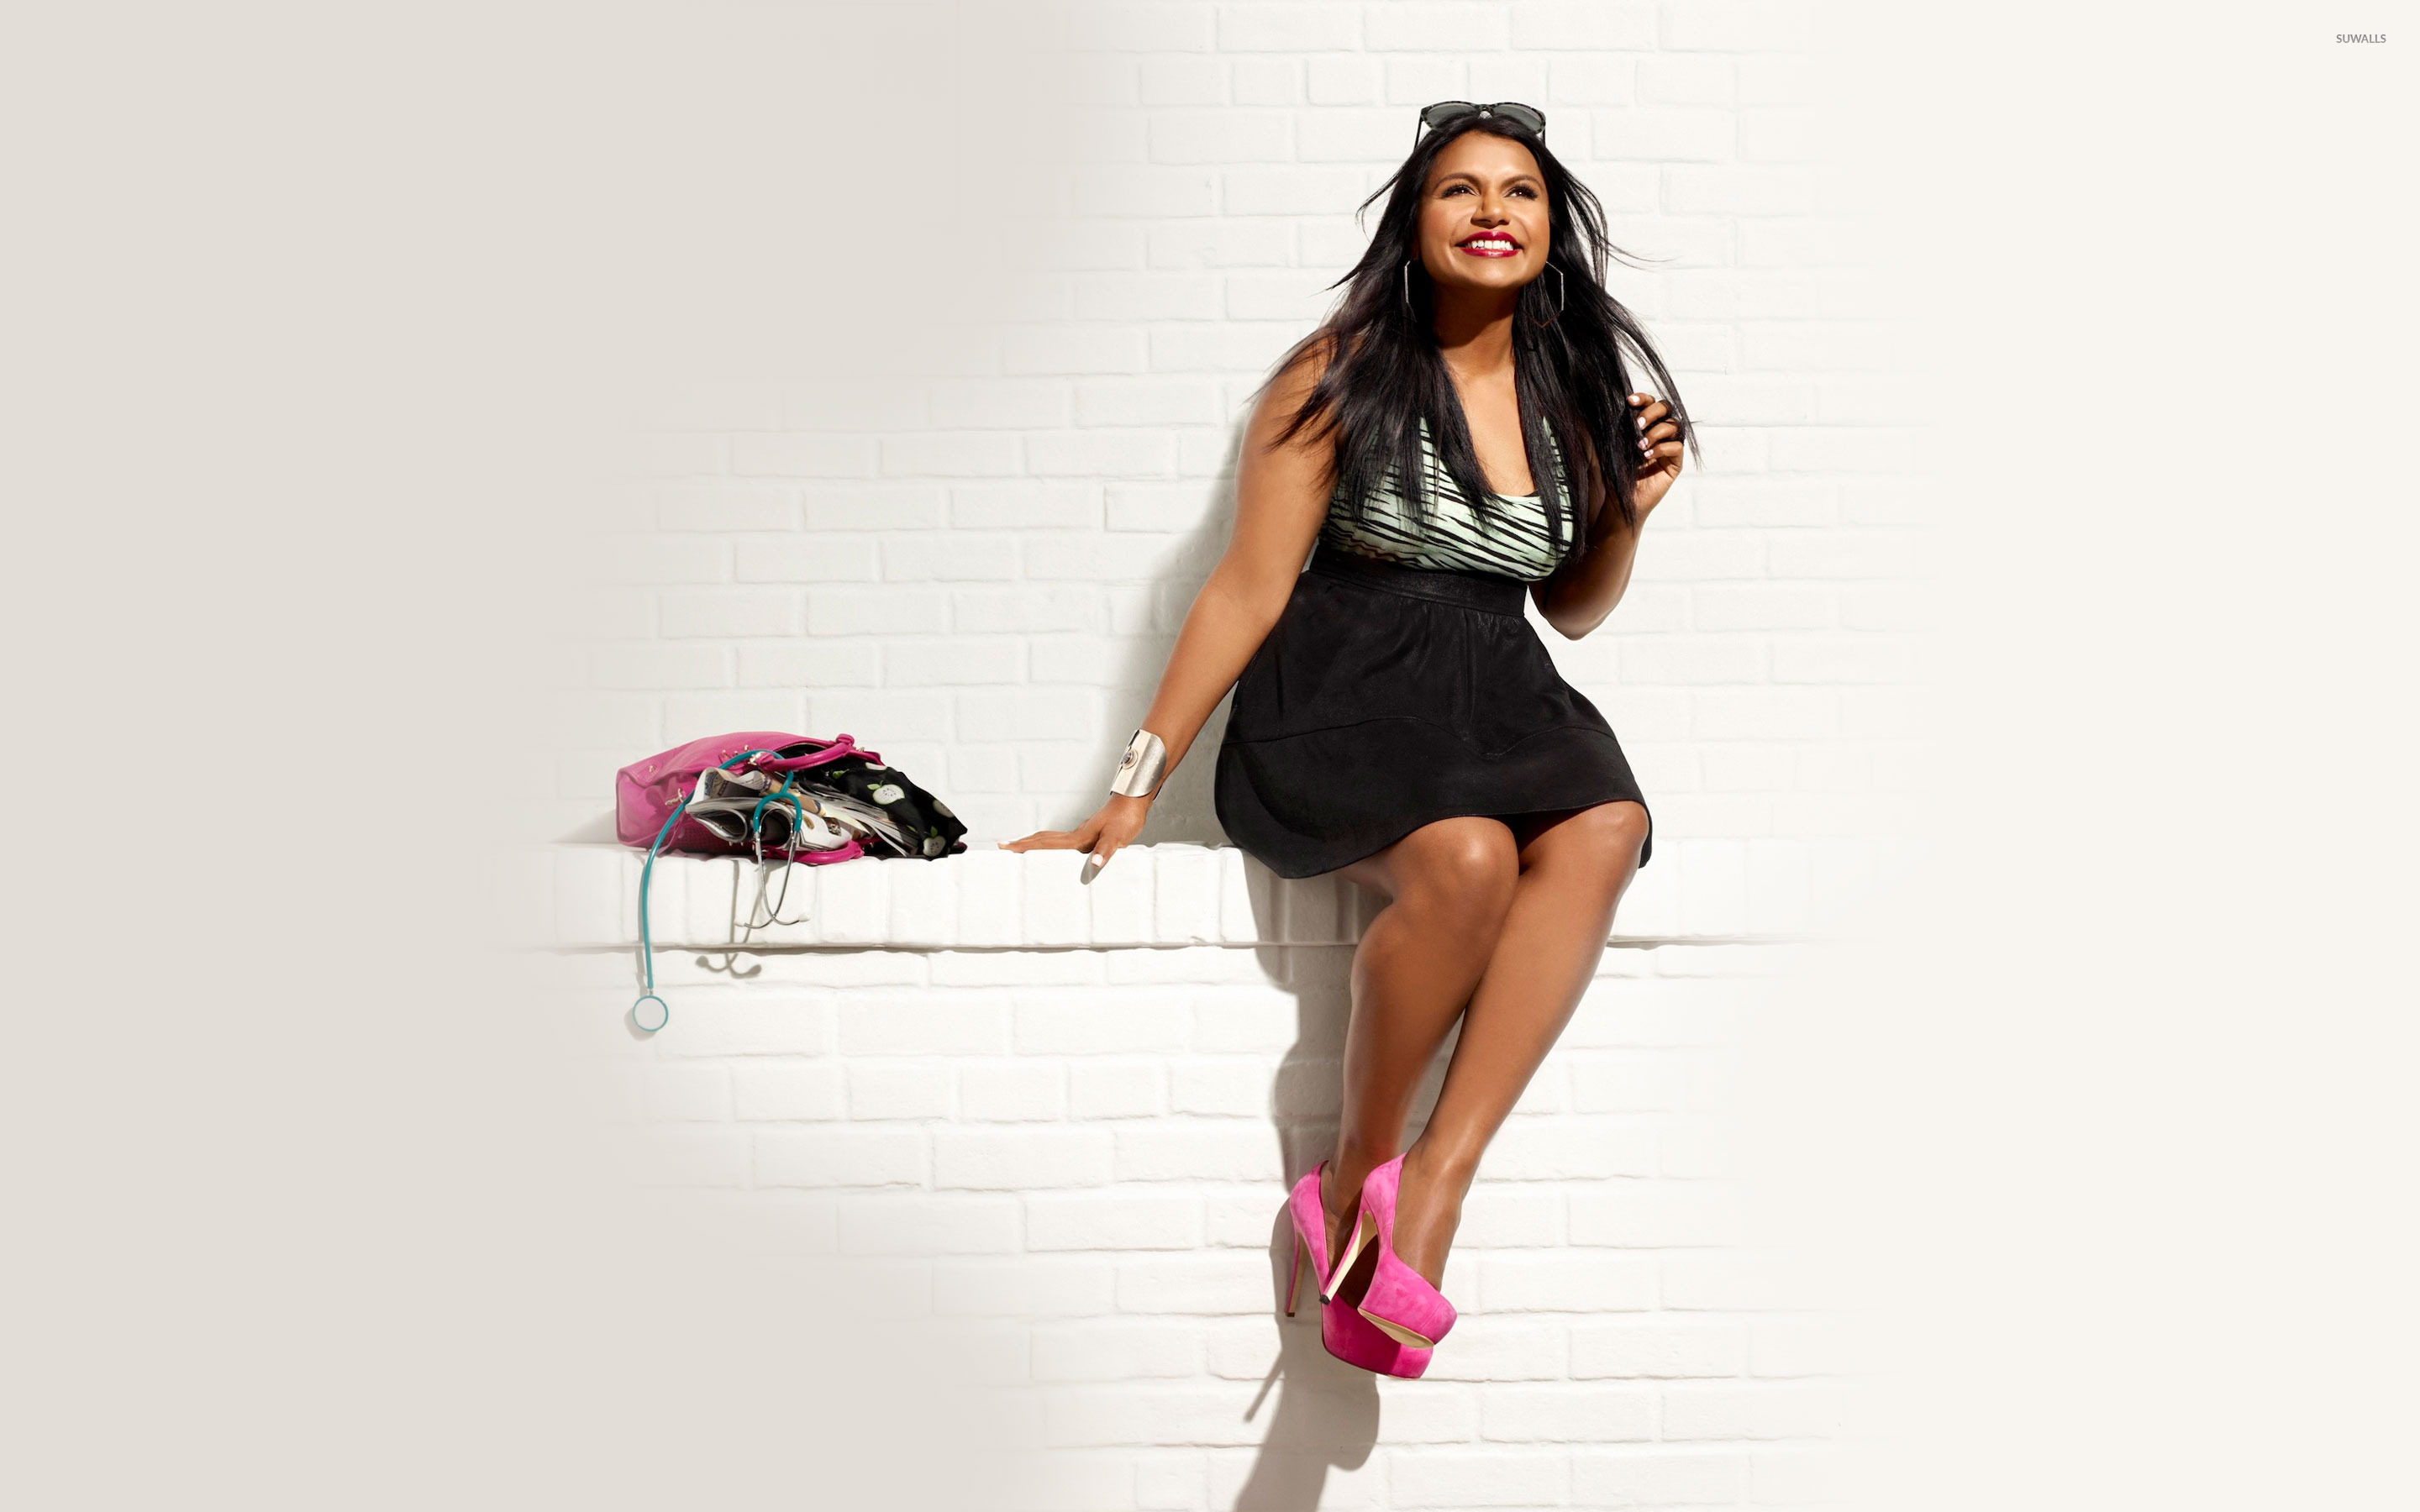 Mindy   The Mindy Project wallpaper   TV Show wallpapers 2880x1800